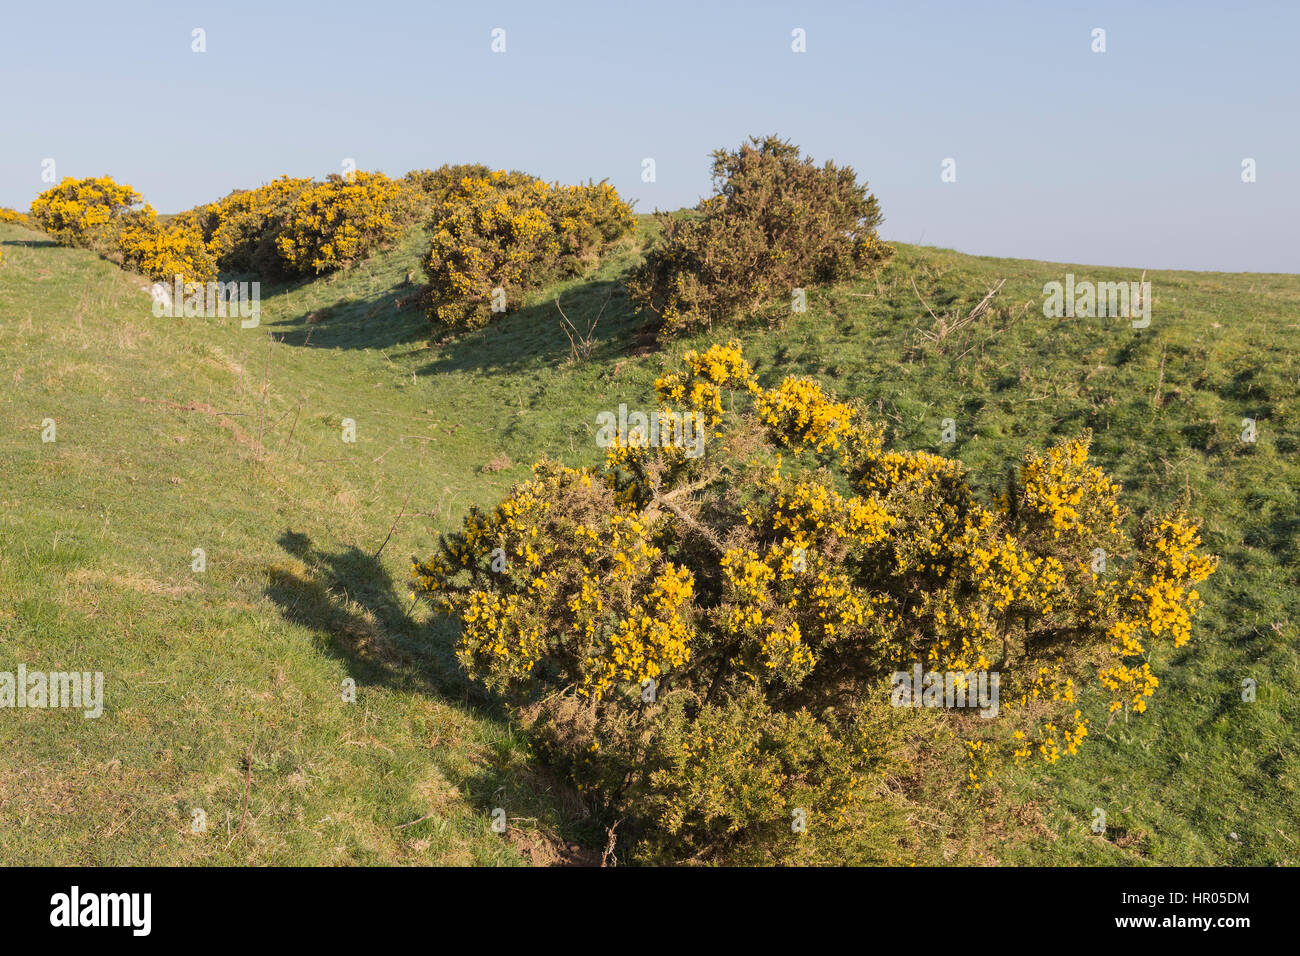 Hadrian's Wall: the Wall ditch near Black Carts, between Limestone Corner and Chesters Roman fort - Stock Image